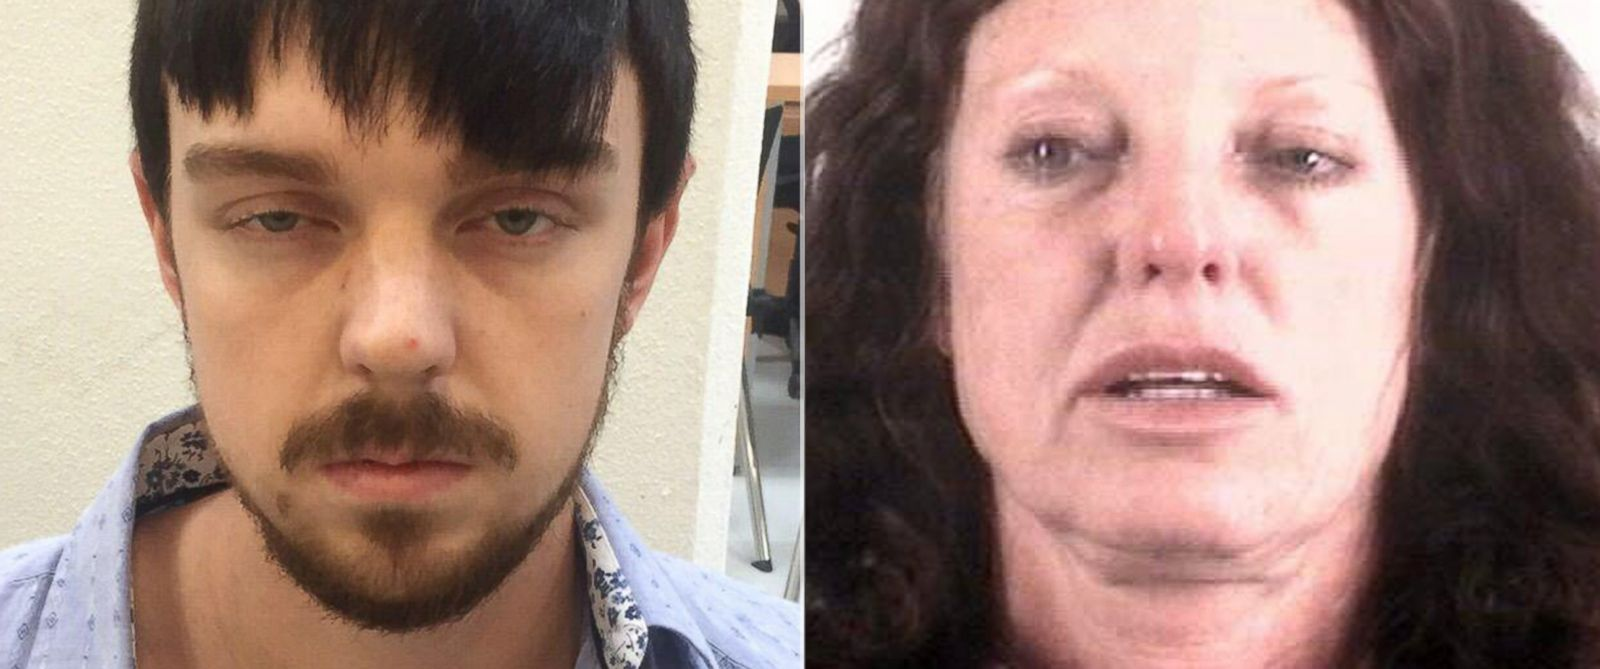 PHOTO: A photo released by the Jalisco State Prosecutors Office on Dec. 28, 2015 shows Ethan Couch and a photo released by the Tarrant County Sheriffs Office on Dec. 21, 2015 shows Ethans mother, Tonya Couch.